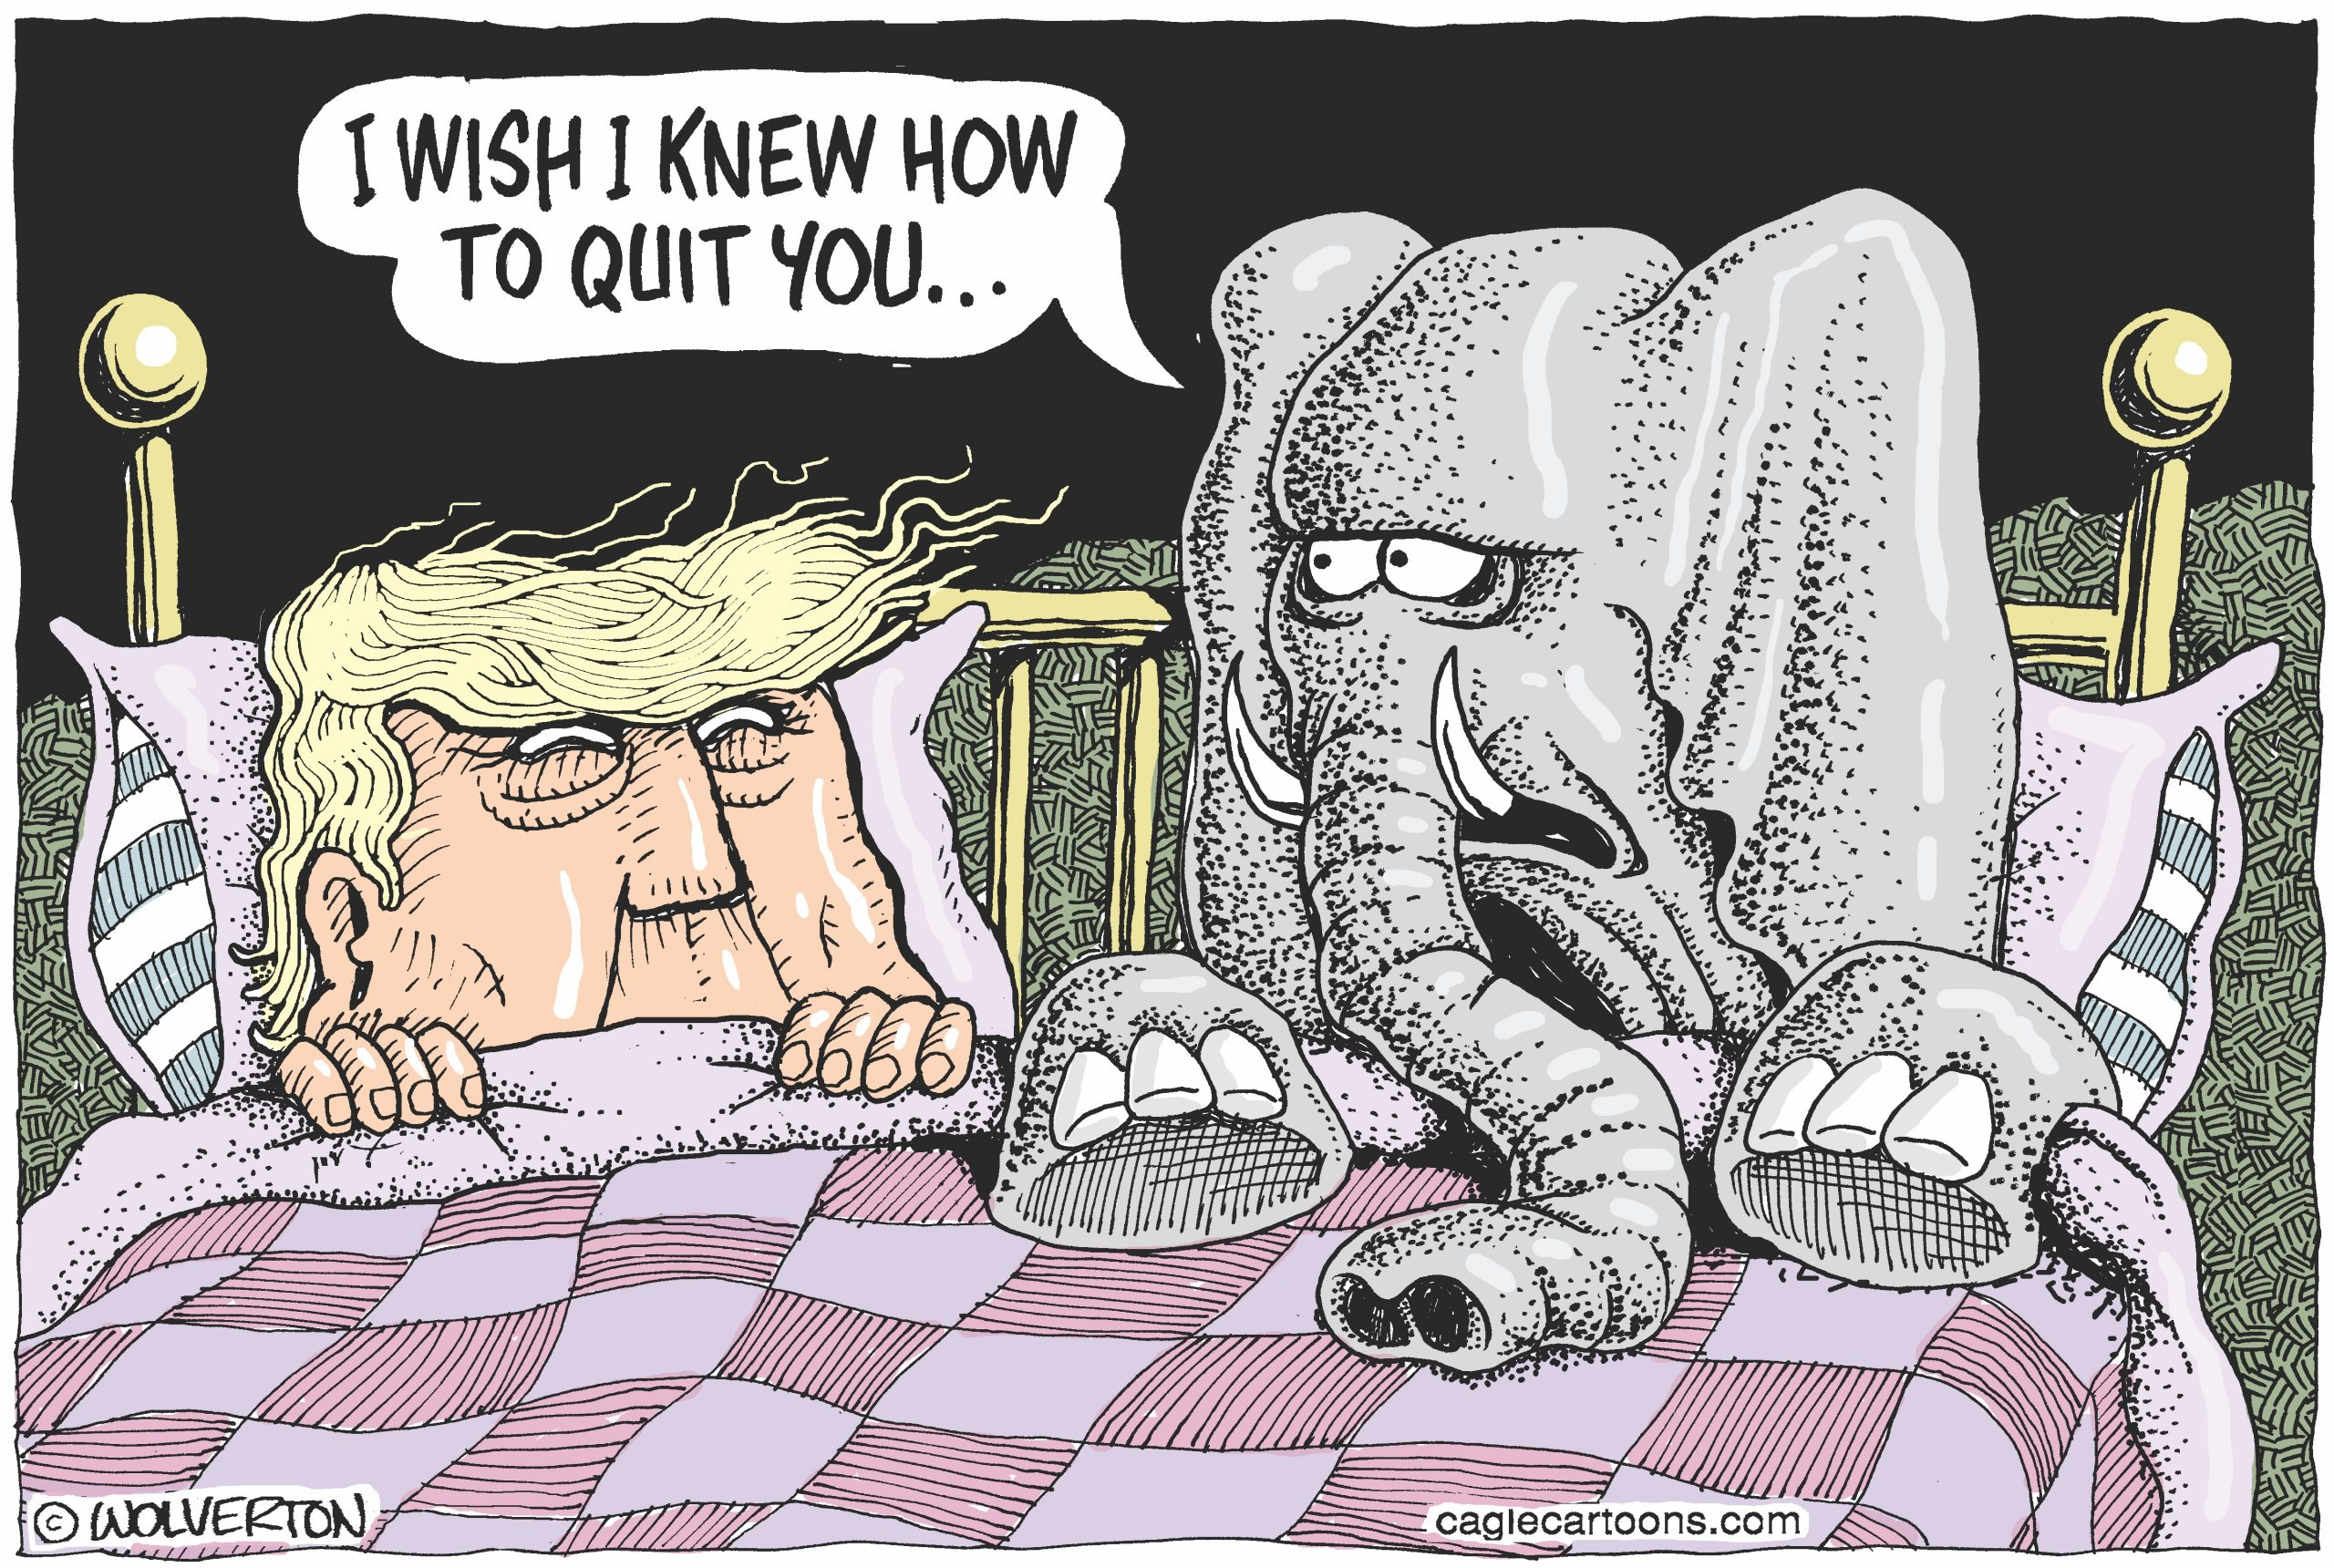 Quitting Trump. Monte Wolverton.